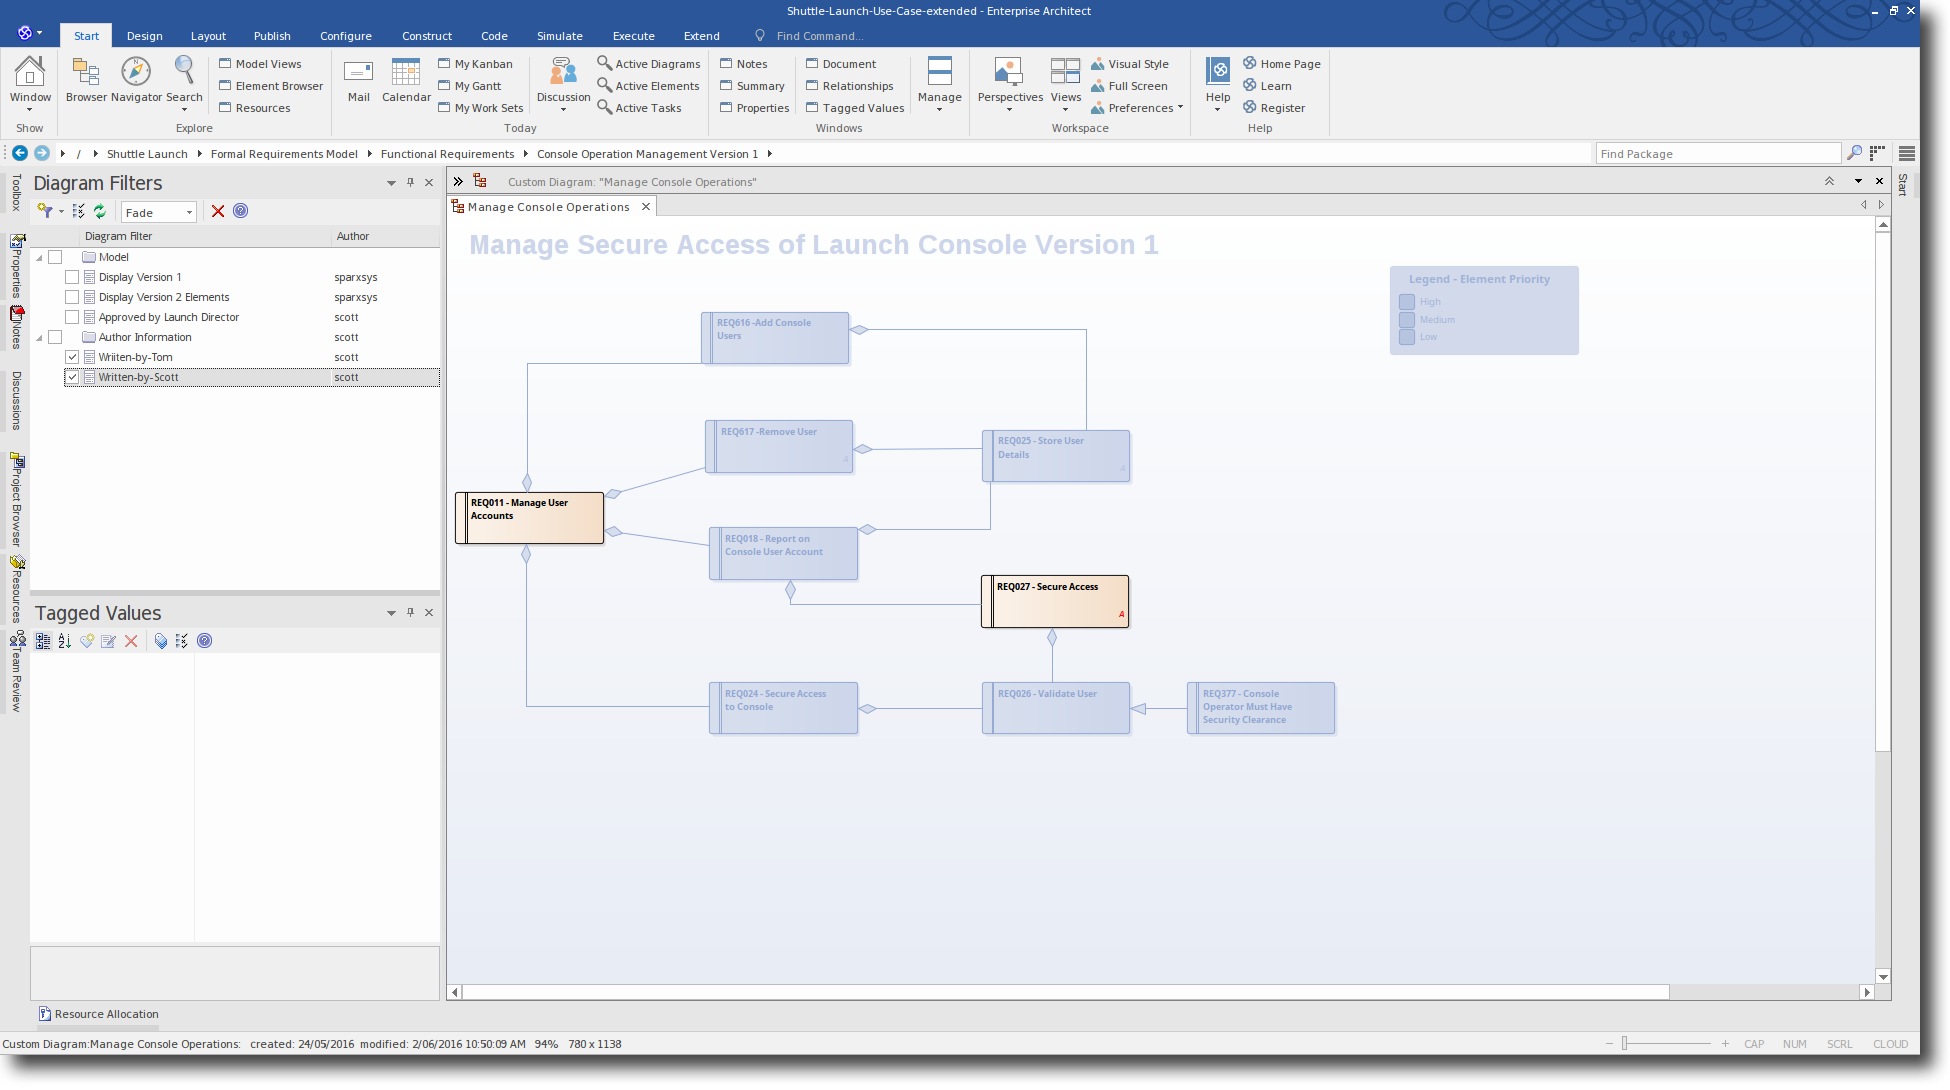 Enterprise Architect Version 13 Sparx Systems Free Download Diagrams Pictures Further Interface Load Cell Wiring Diagram Filtering Based On Author Name